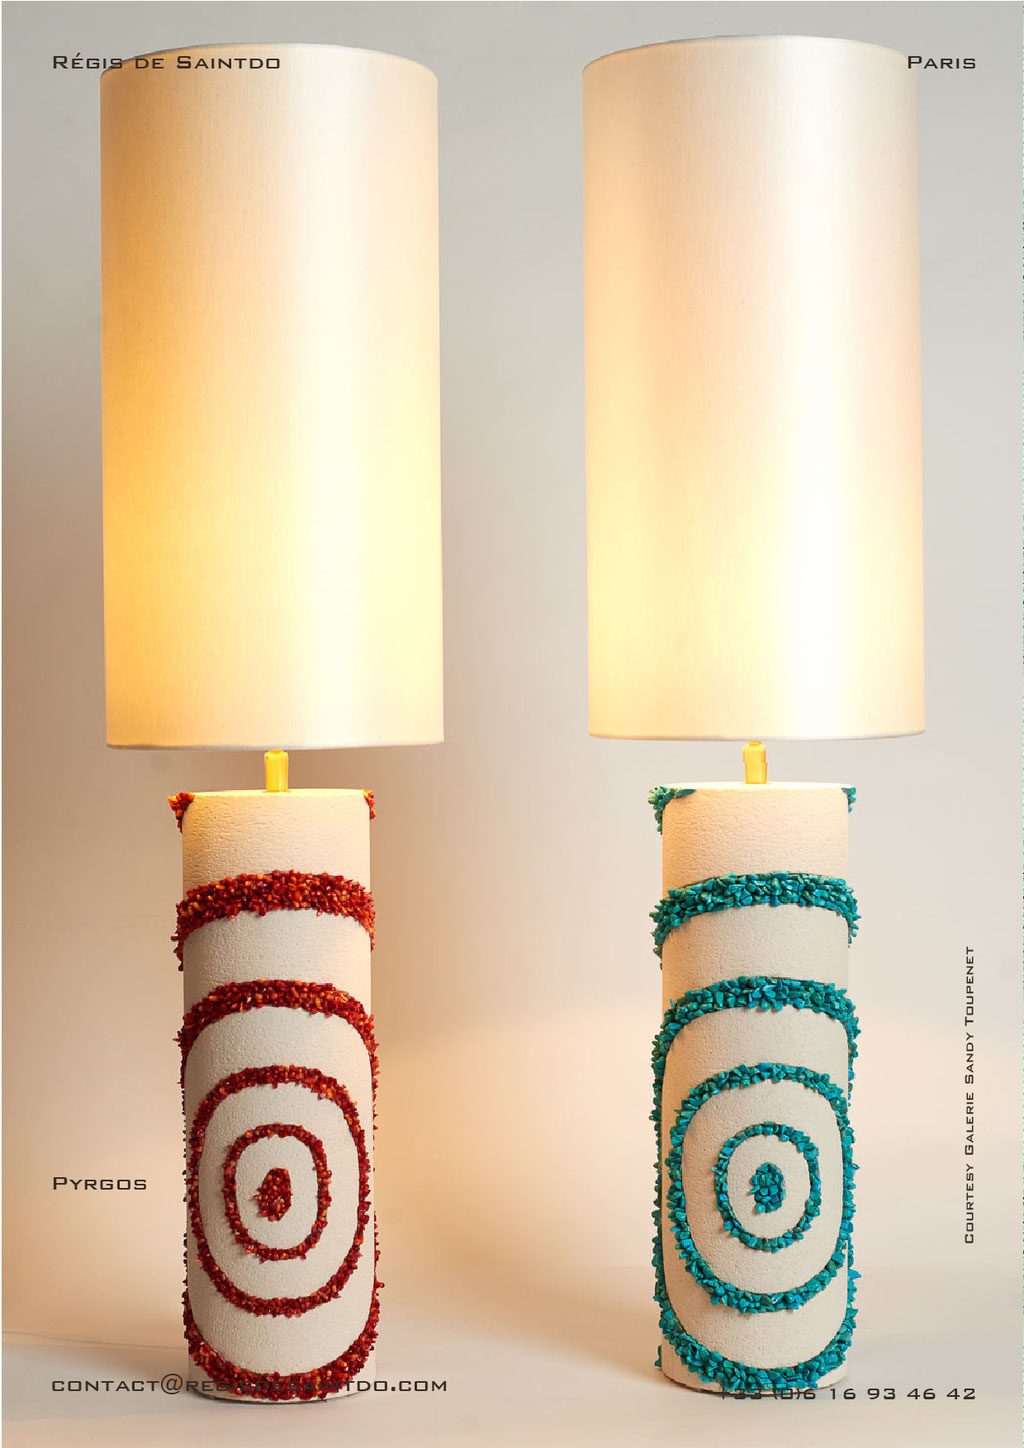 Lamps Pyrgos ceramic, turquoises howlites & coral- hand made